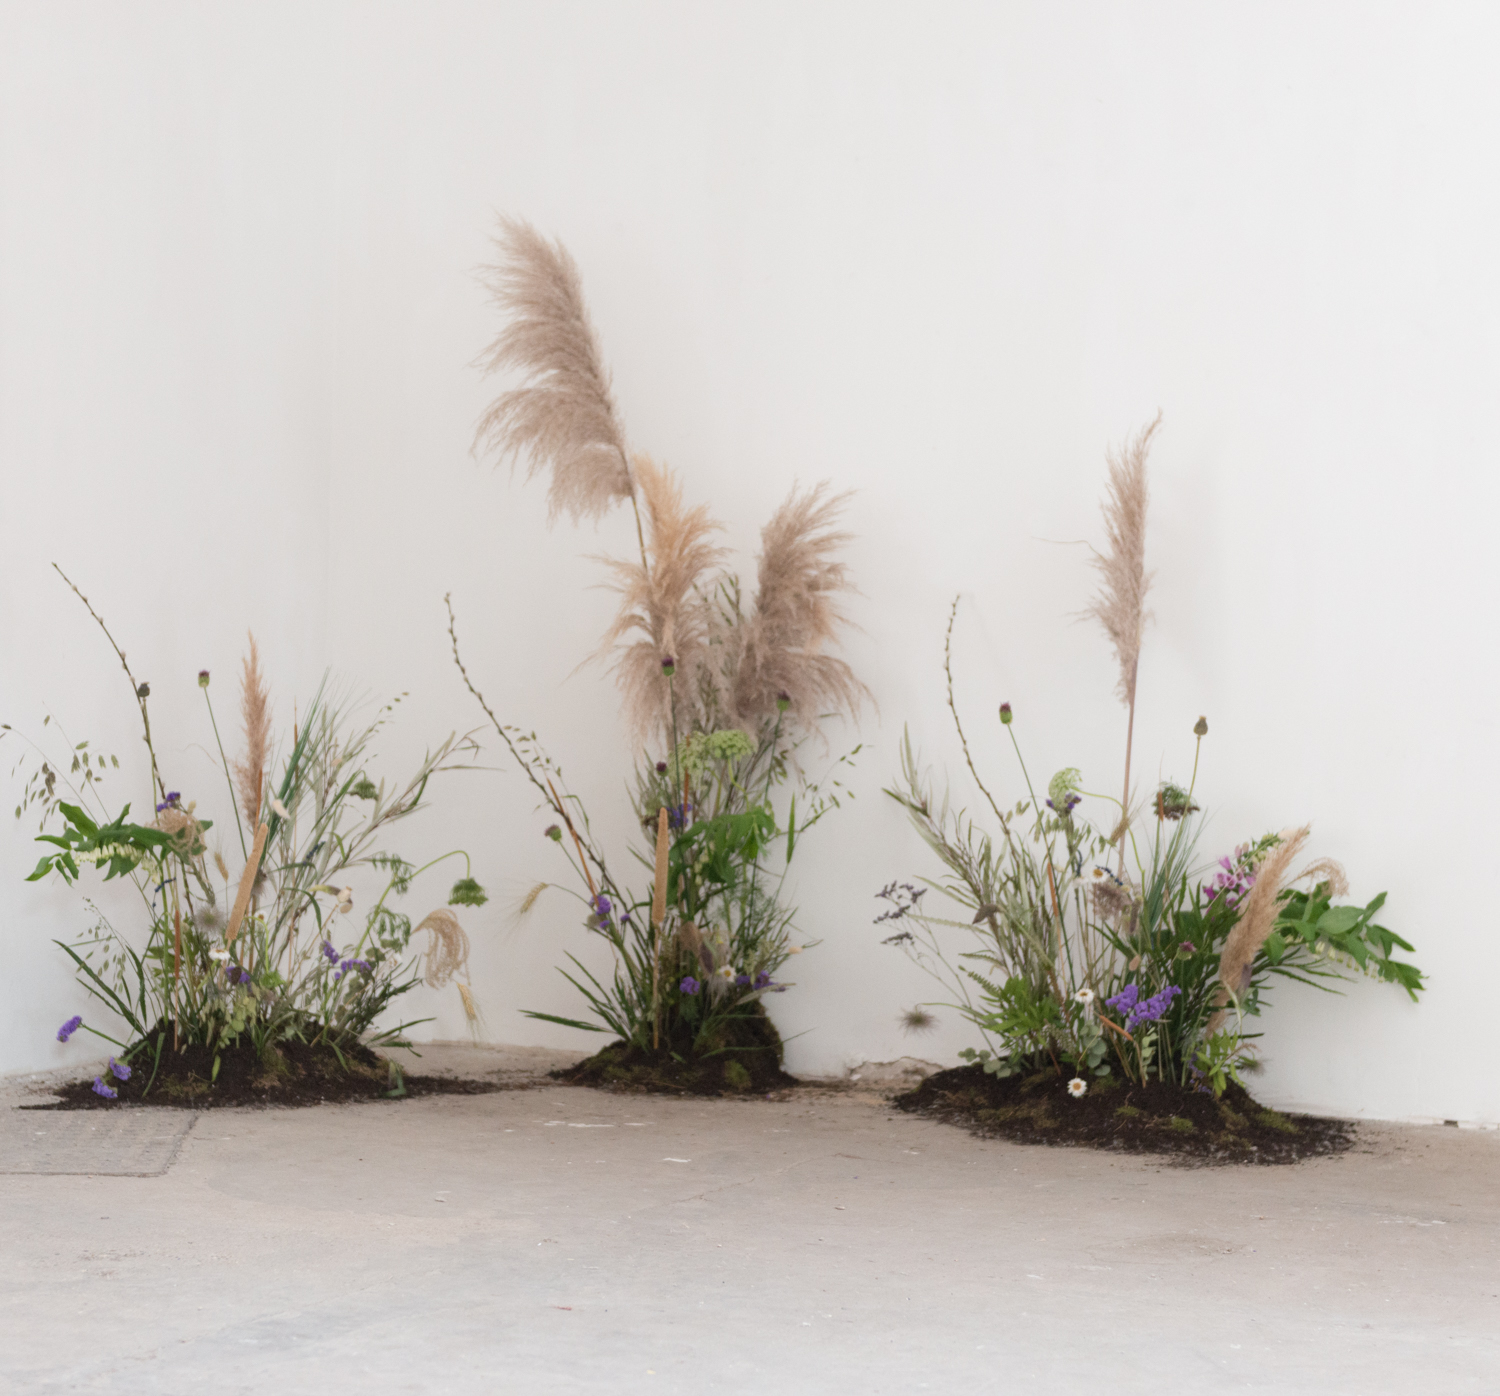 The florals in the exhibit are by Wallflower peckham